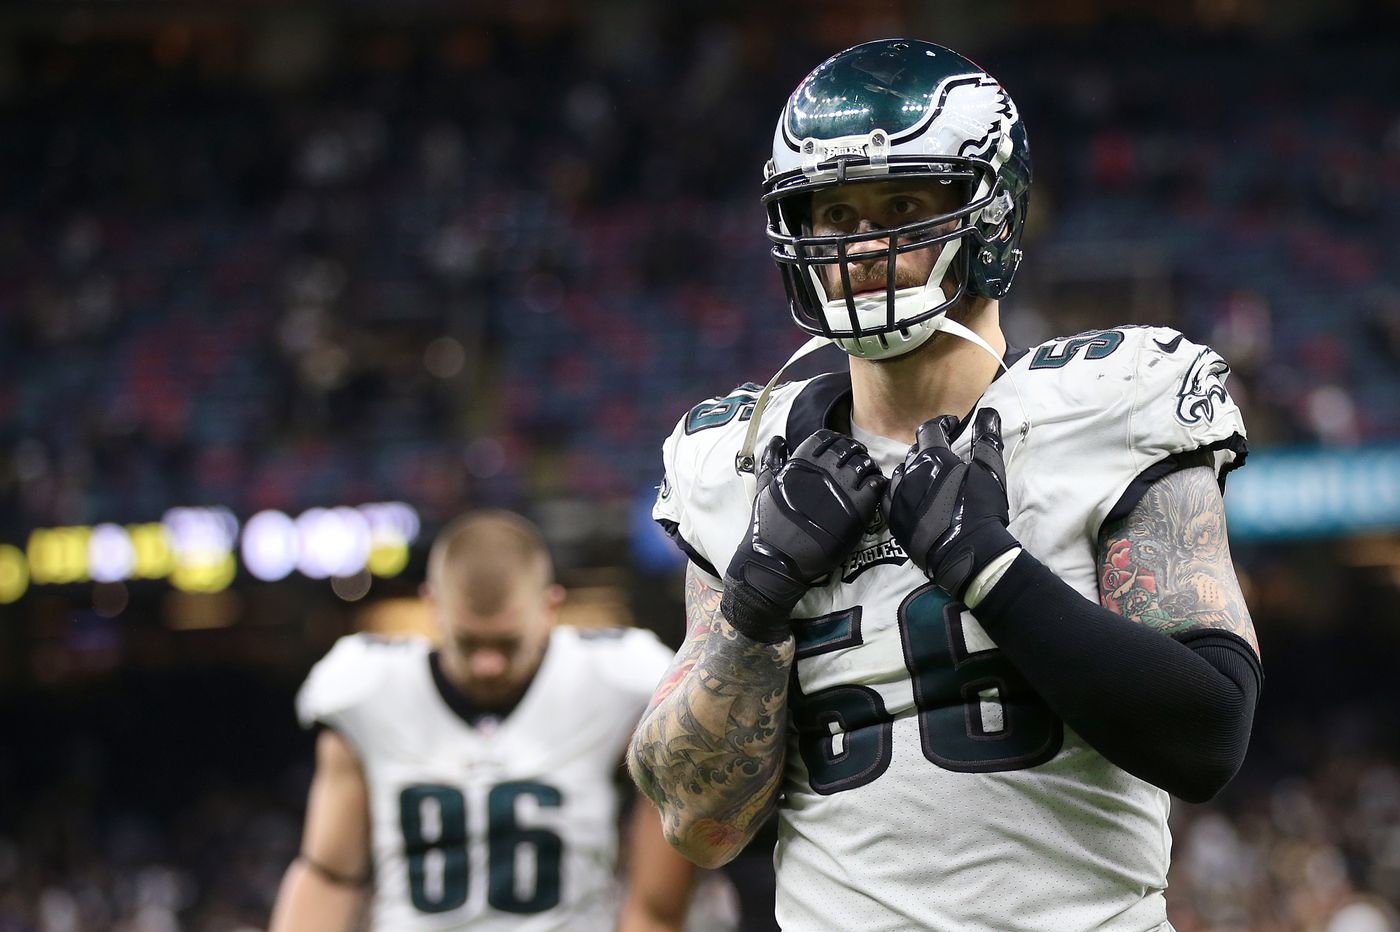 Chris Long won't return to Eagles or join another NFL team just to be a 'locker-room guy'